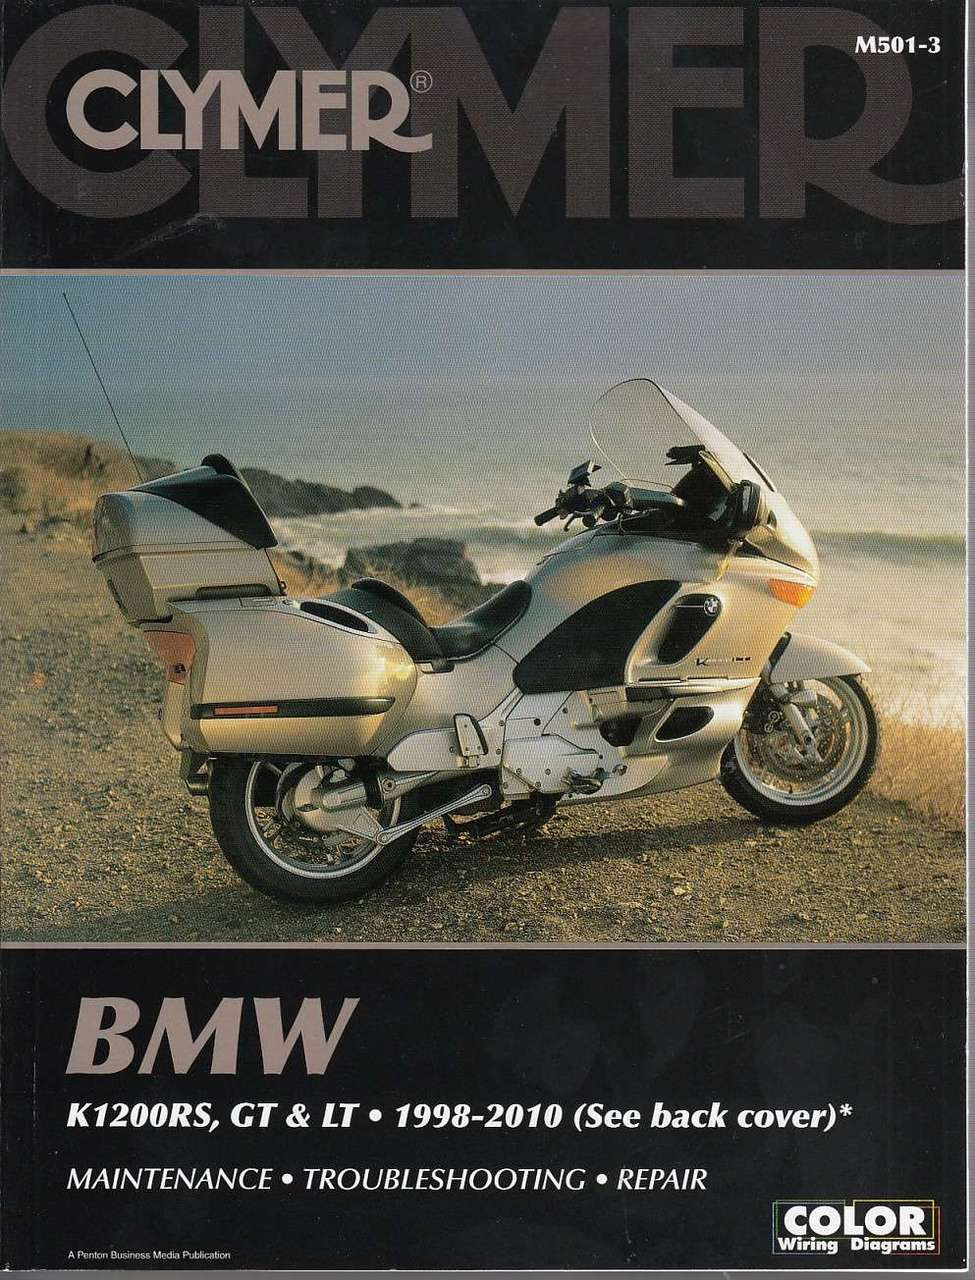 bmw k1200rs k1200gt k1200lt 1998 2010 workshop manual bmw k 1200 gt wiring diagram [ 975 x 1280 Pixel ]